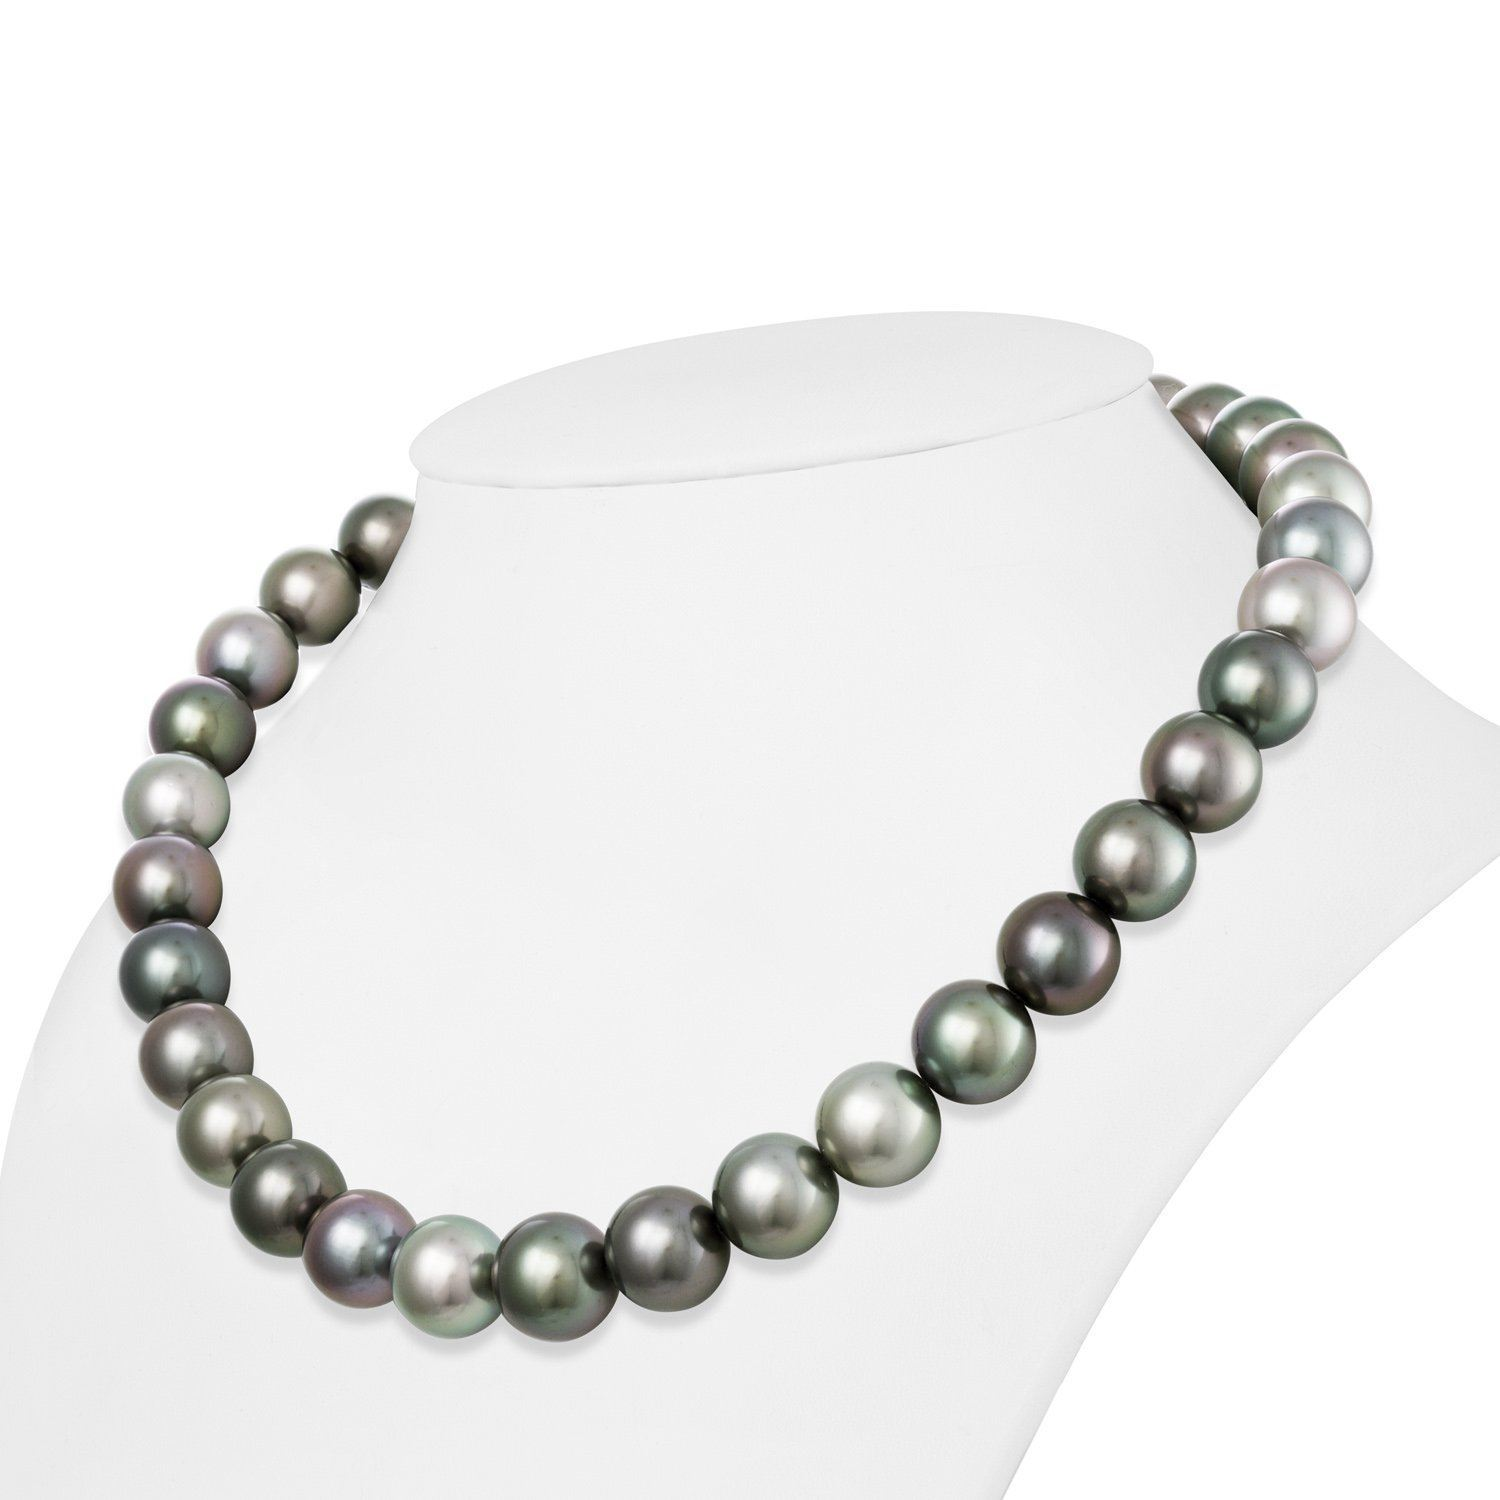 13.0-14.3 mm AAA Tahitian Round Pearl Necklace